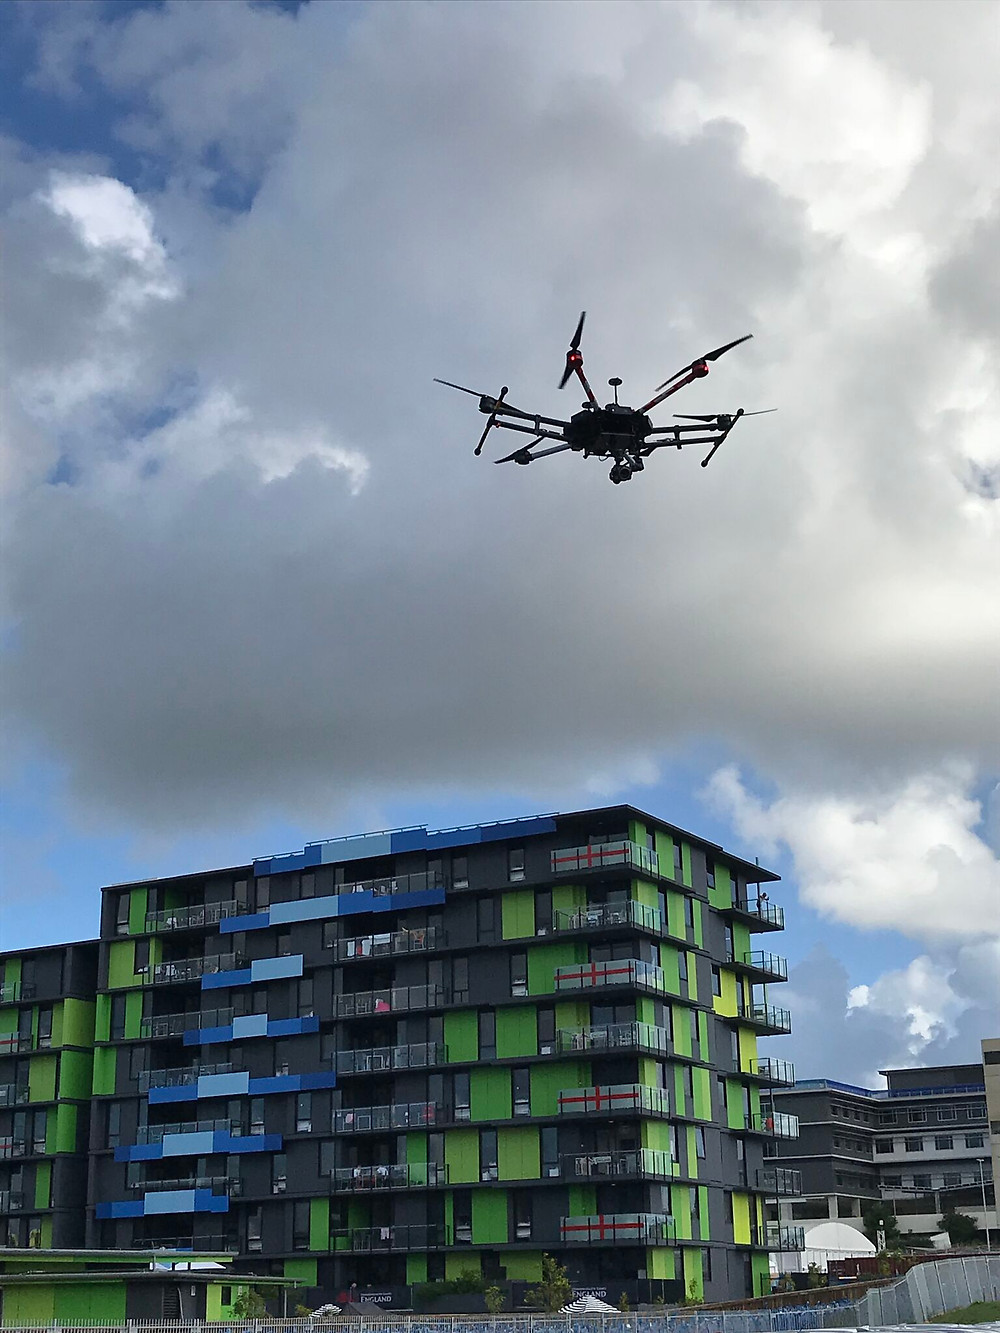 Dribes Security Dji M600 Pro securing the commonwealth games athletes village